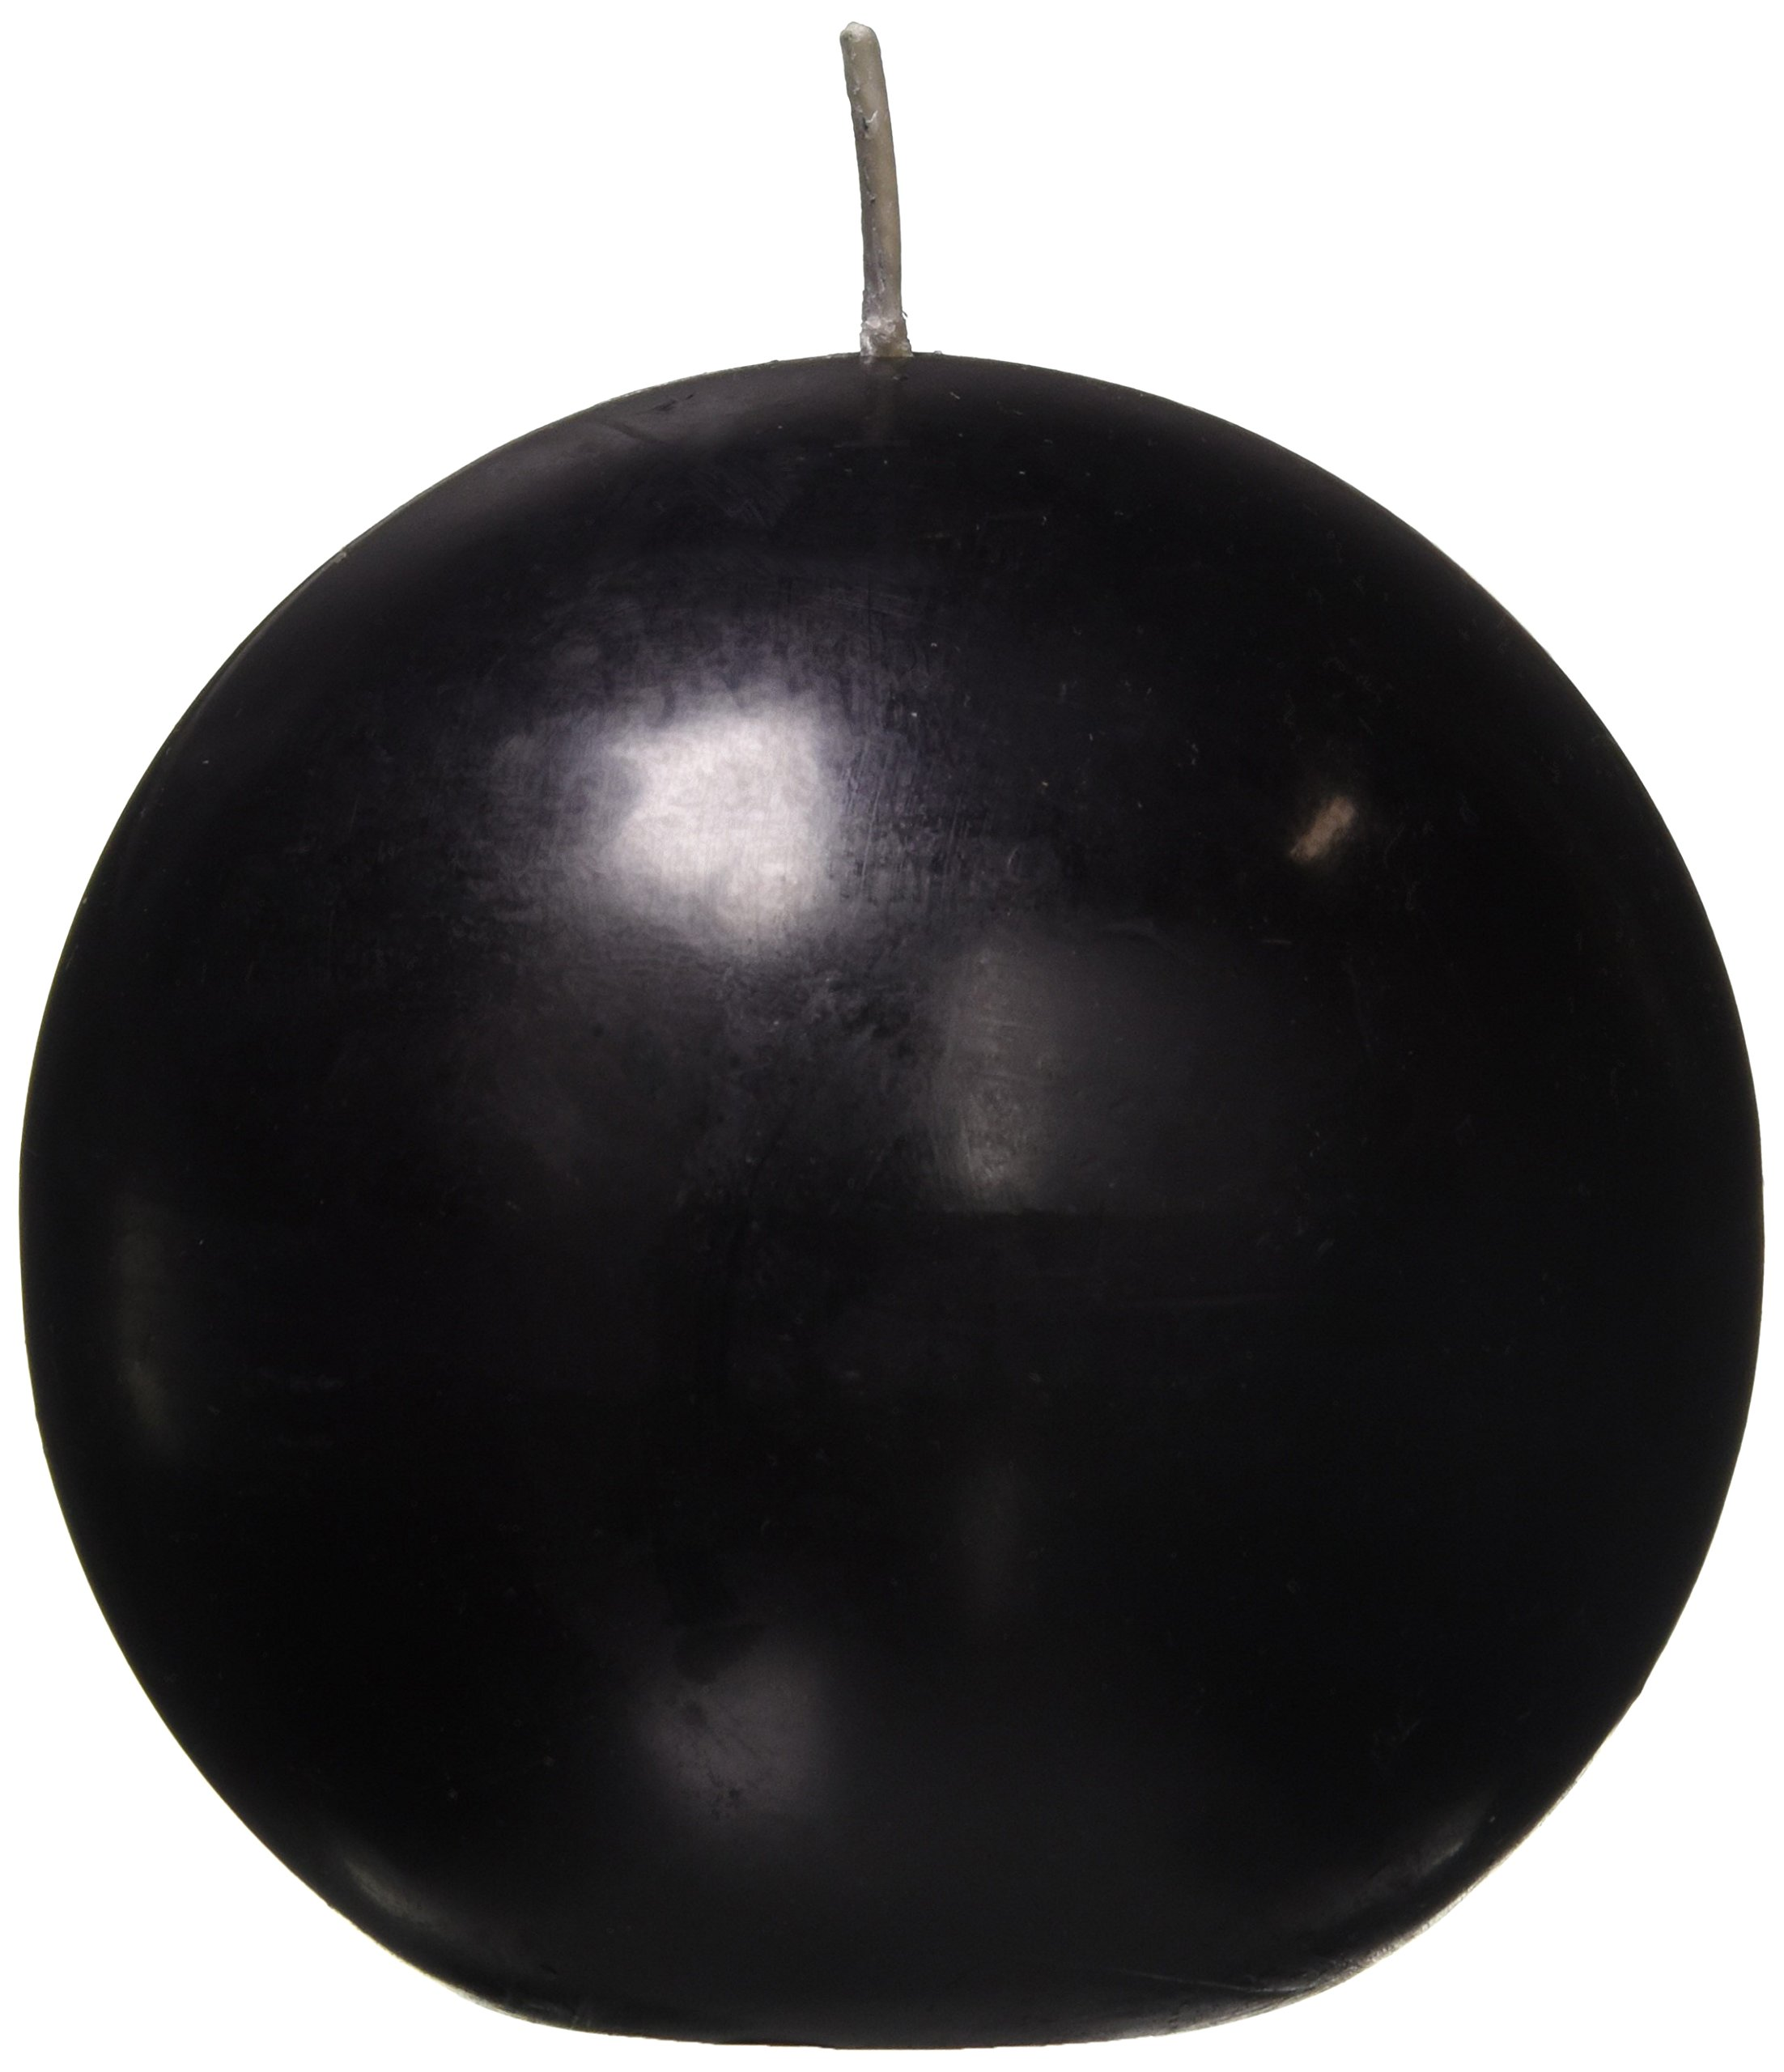 Zest Candle 2-Piece Ball Candles, 4-Inch, Black by Zest Candle